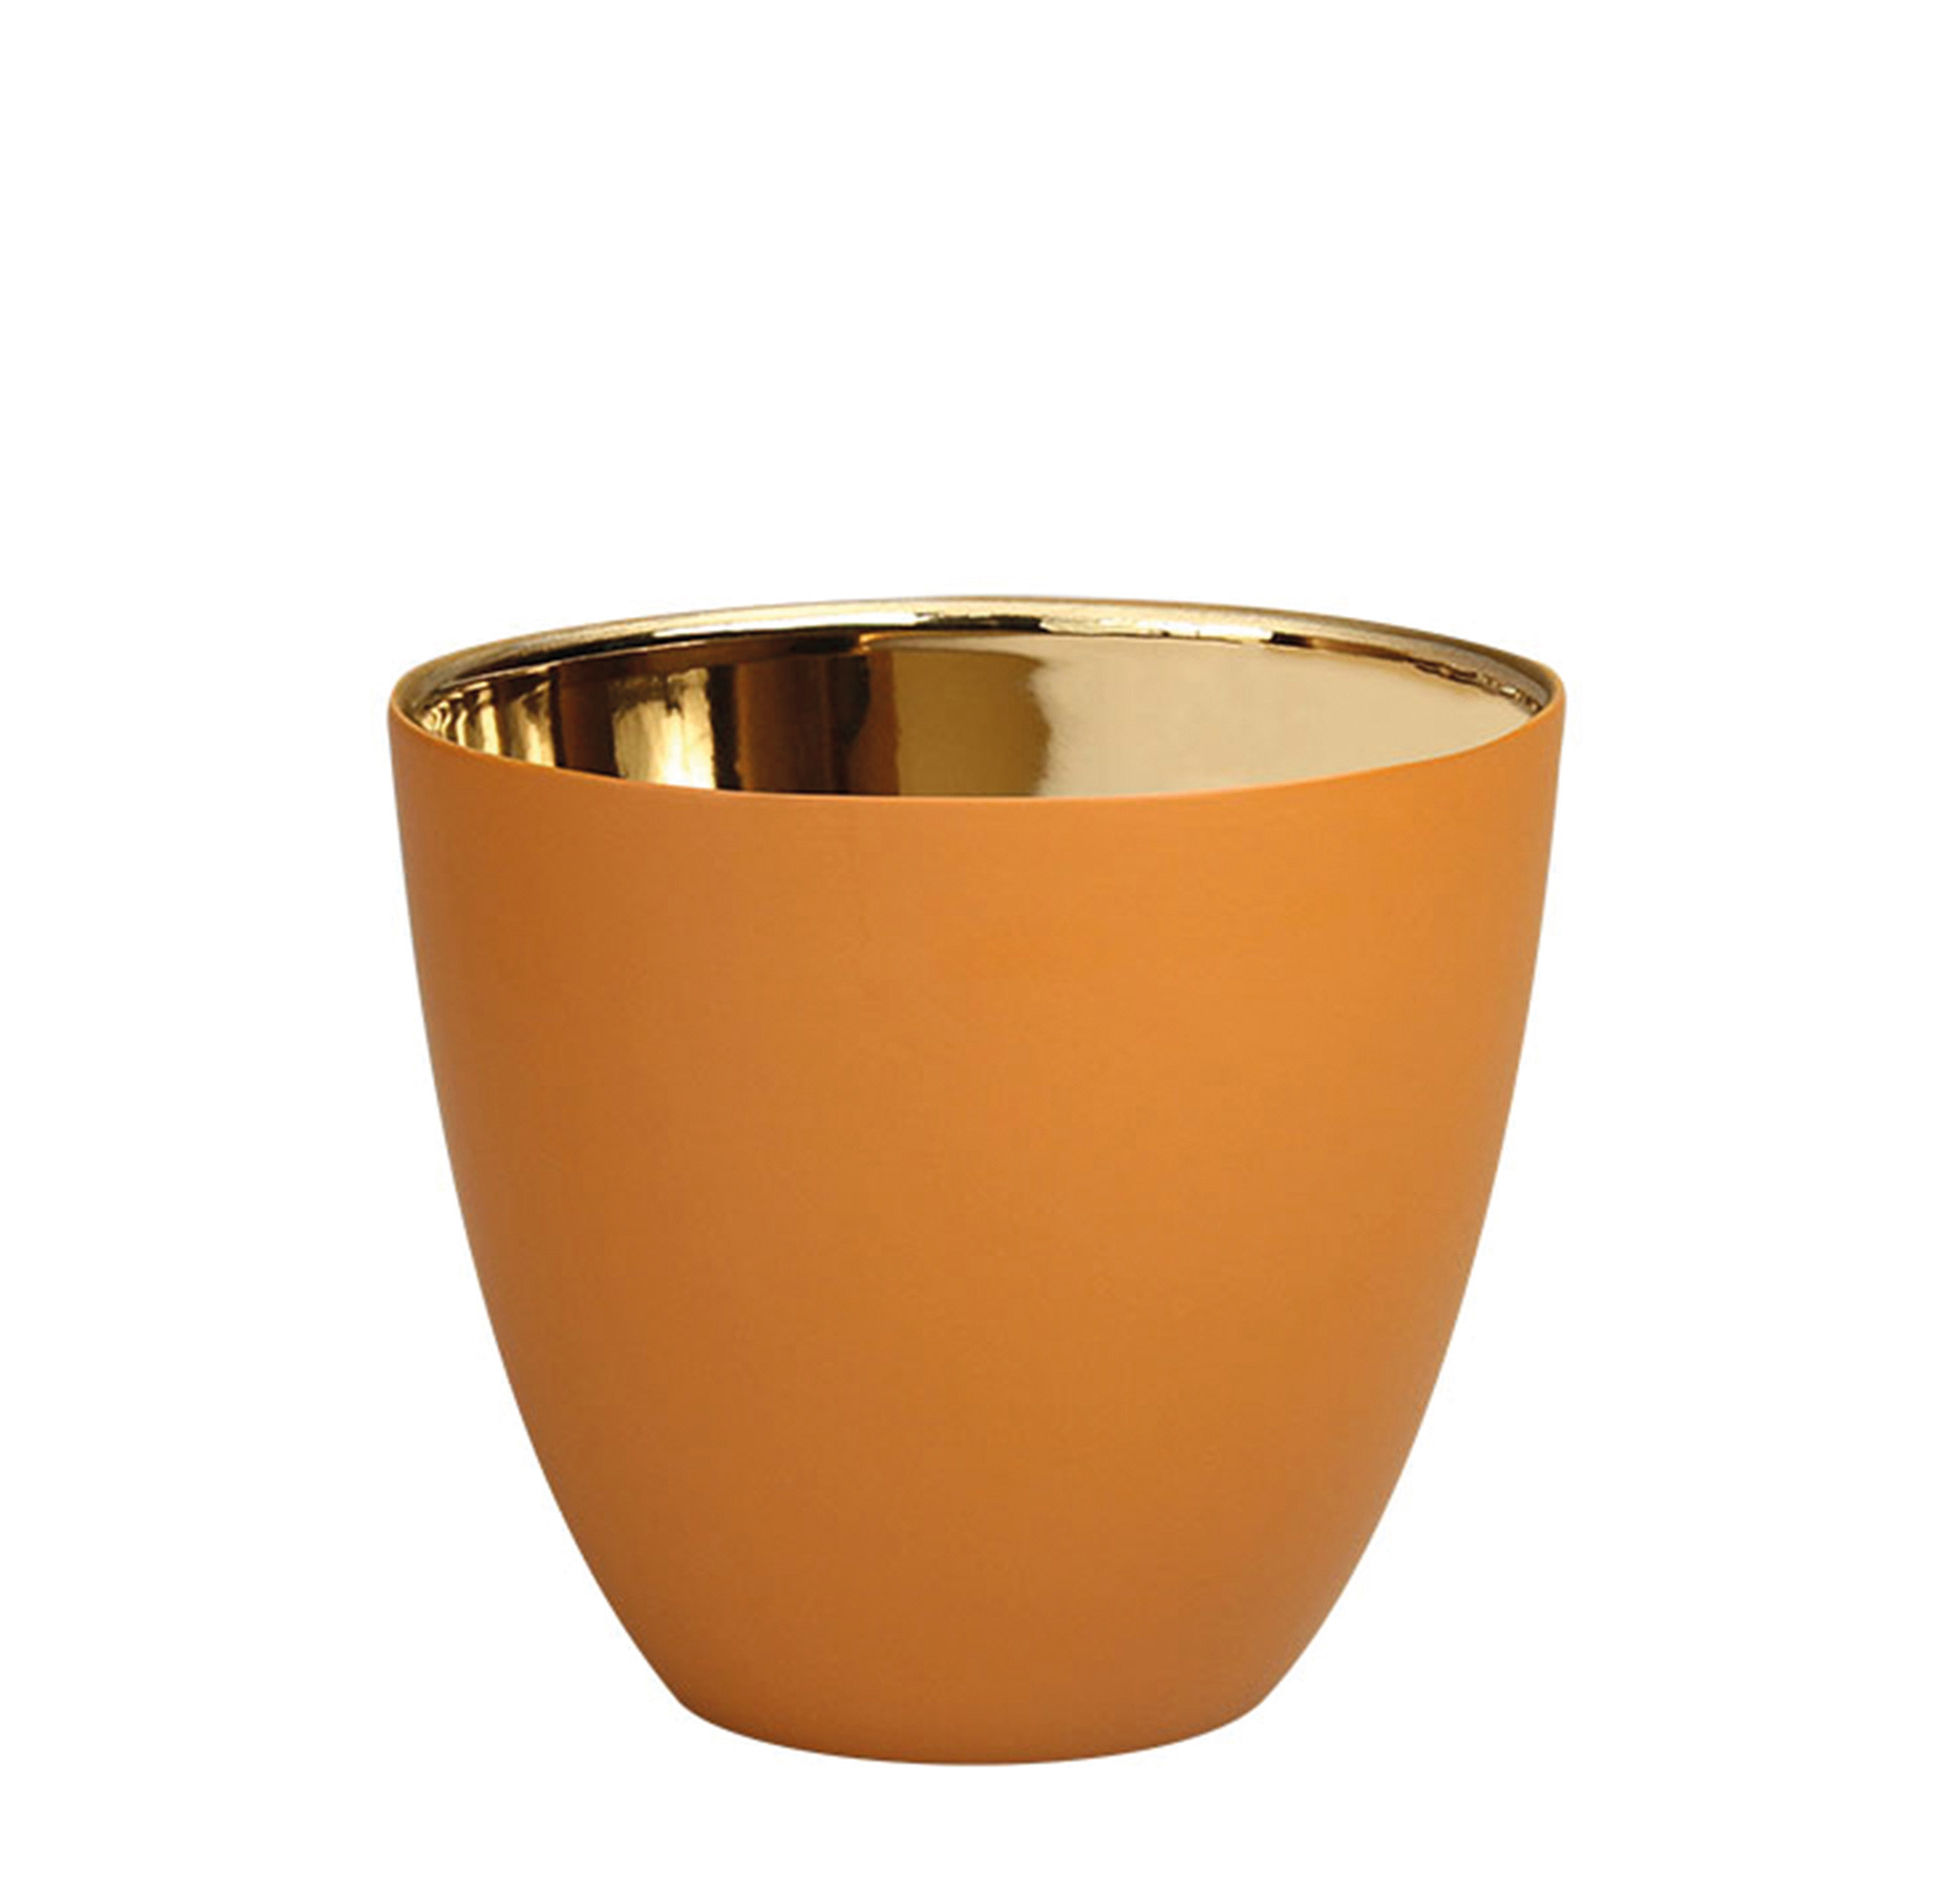 Decoration - Candles & Candle Holders - Summer Small Candle holder - / H 6.5 cm - Porcelain by & klevering - Hazelnut / Gold - China